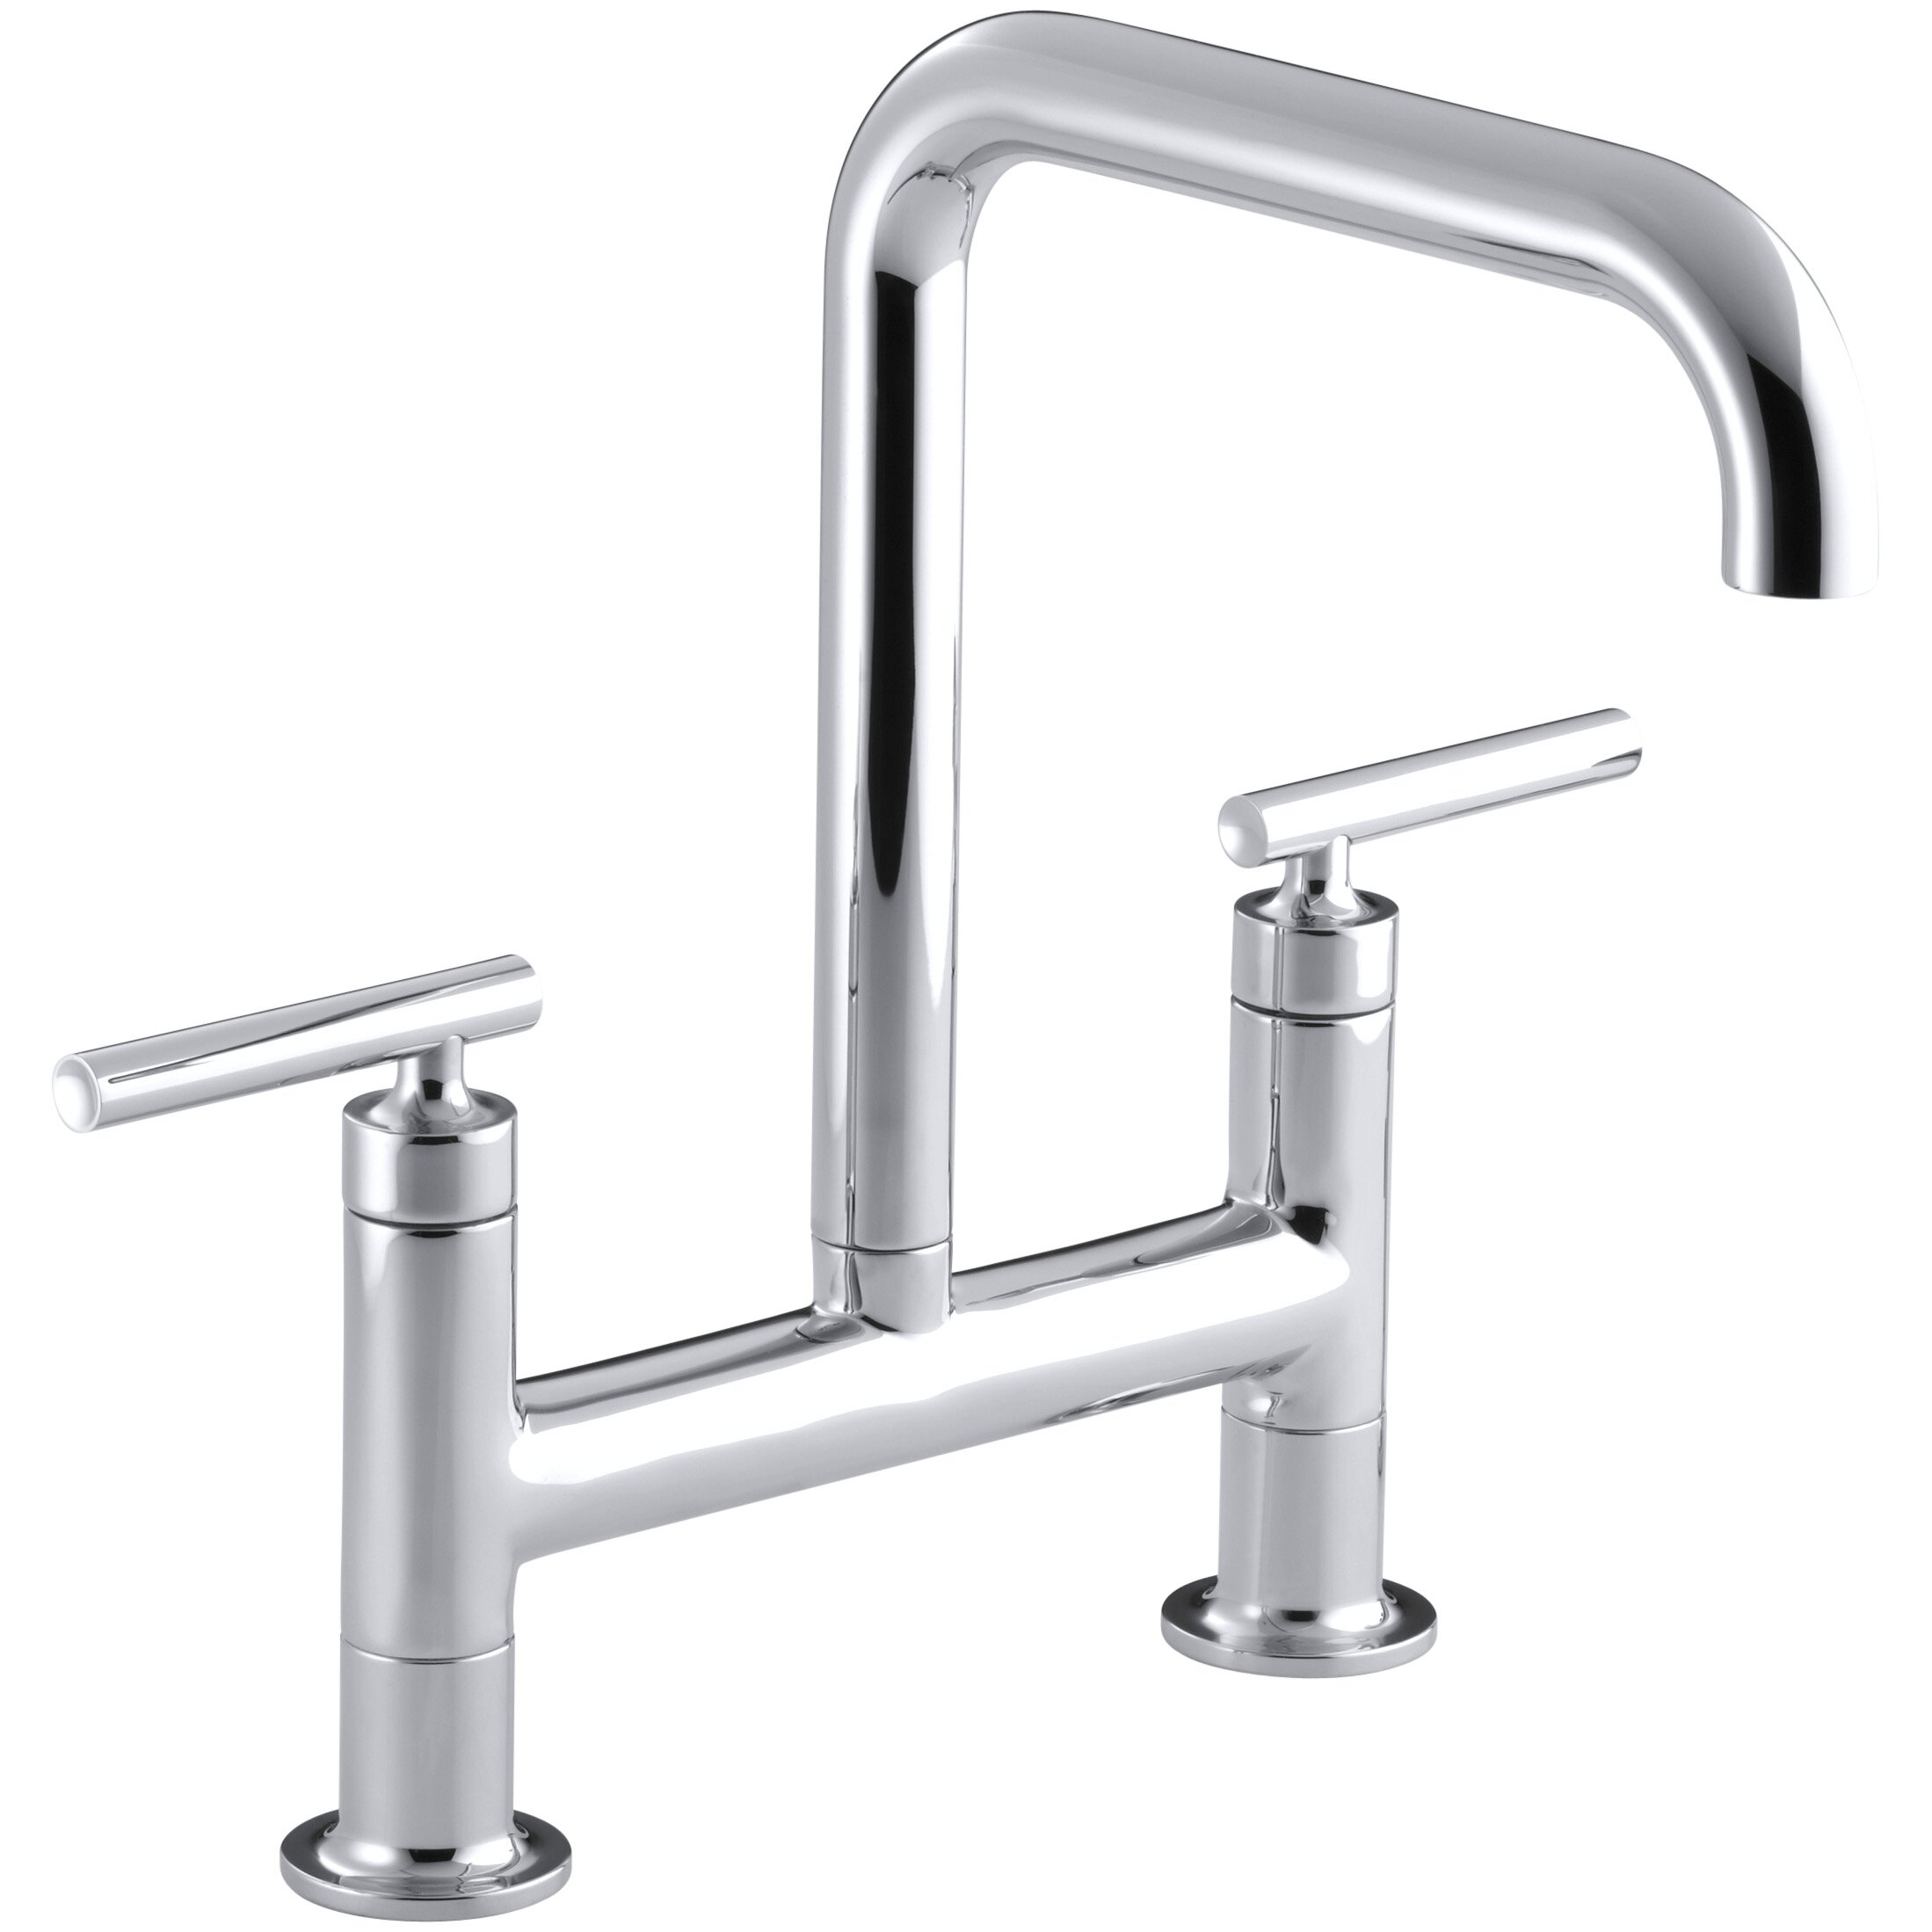 Kohler Faucet Reviews : Kohler Purist Two-Hole Deck-Mount Bridge Kitchen Sink Faucet & Reviews ...